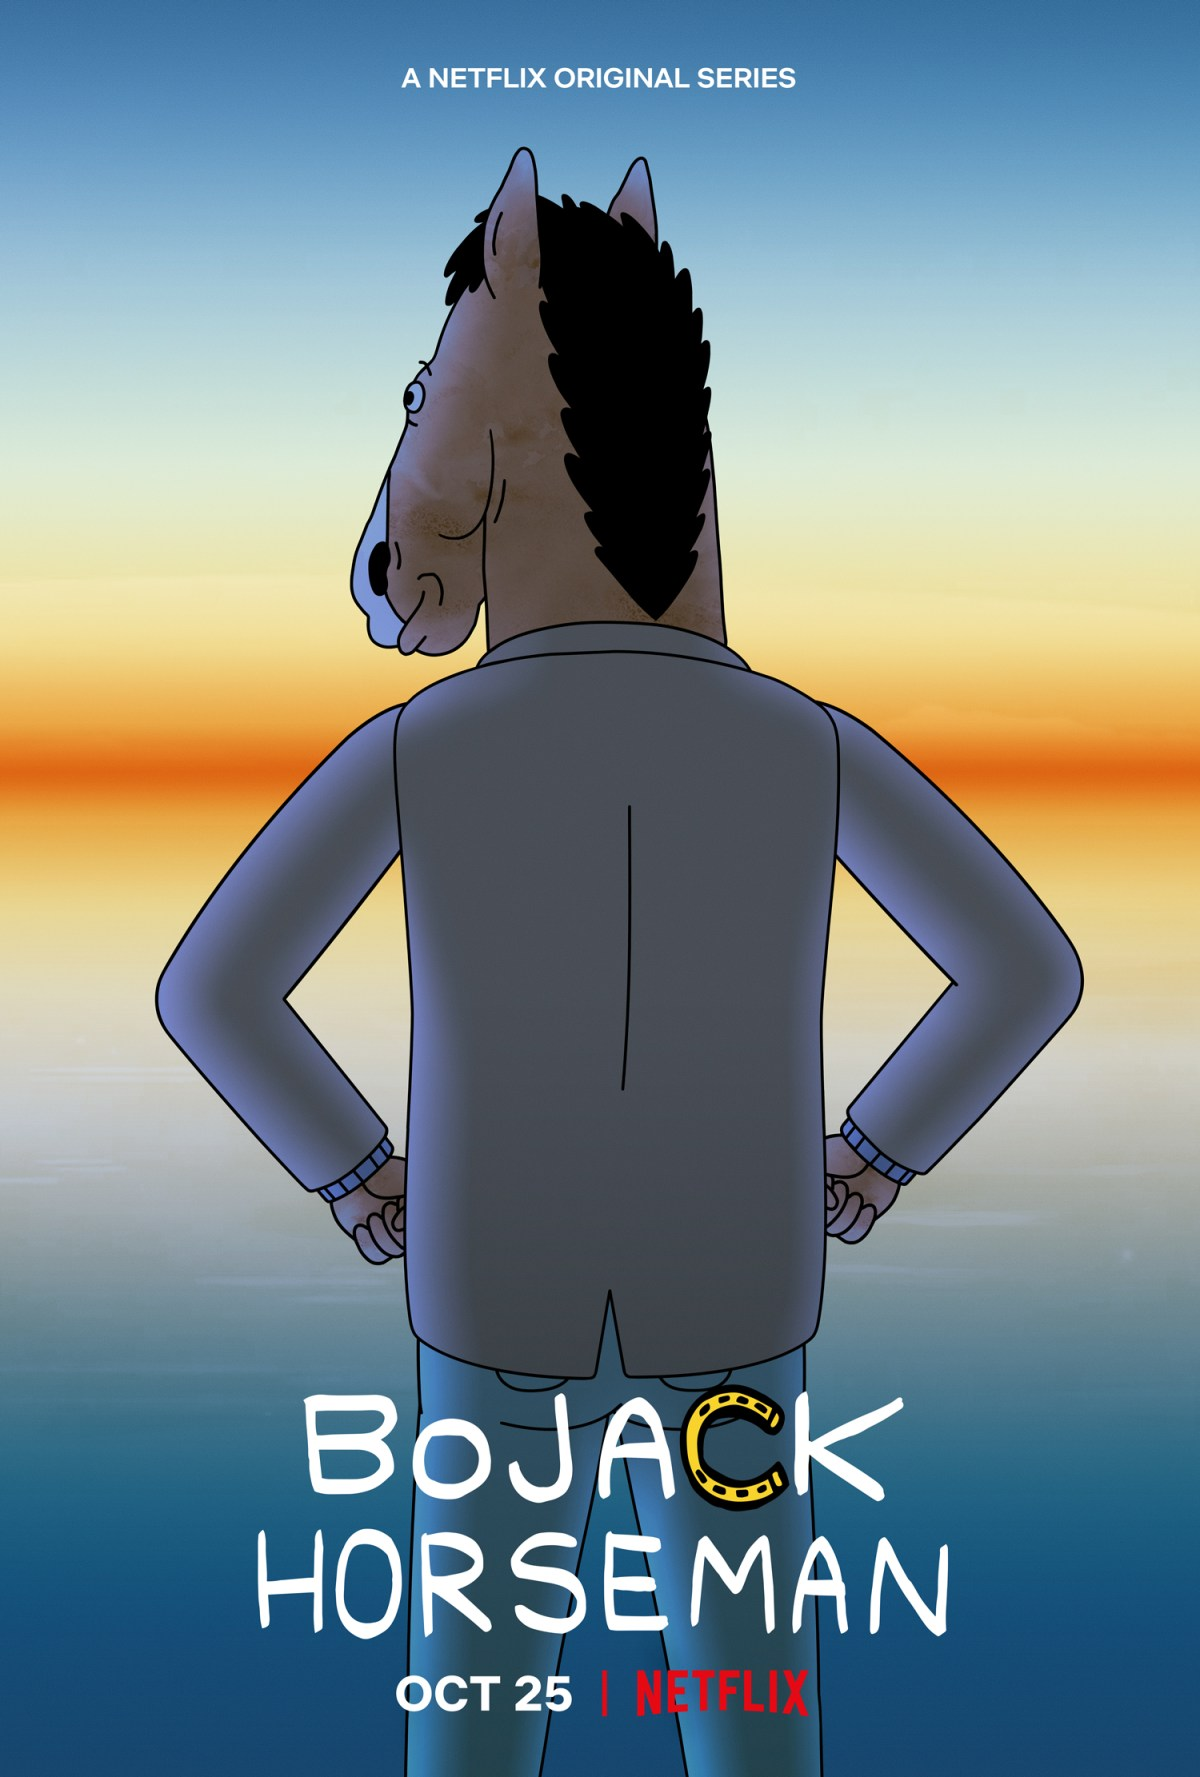 The Sn. 6 Bojack Horseman Officially Netflix Poster.